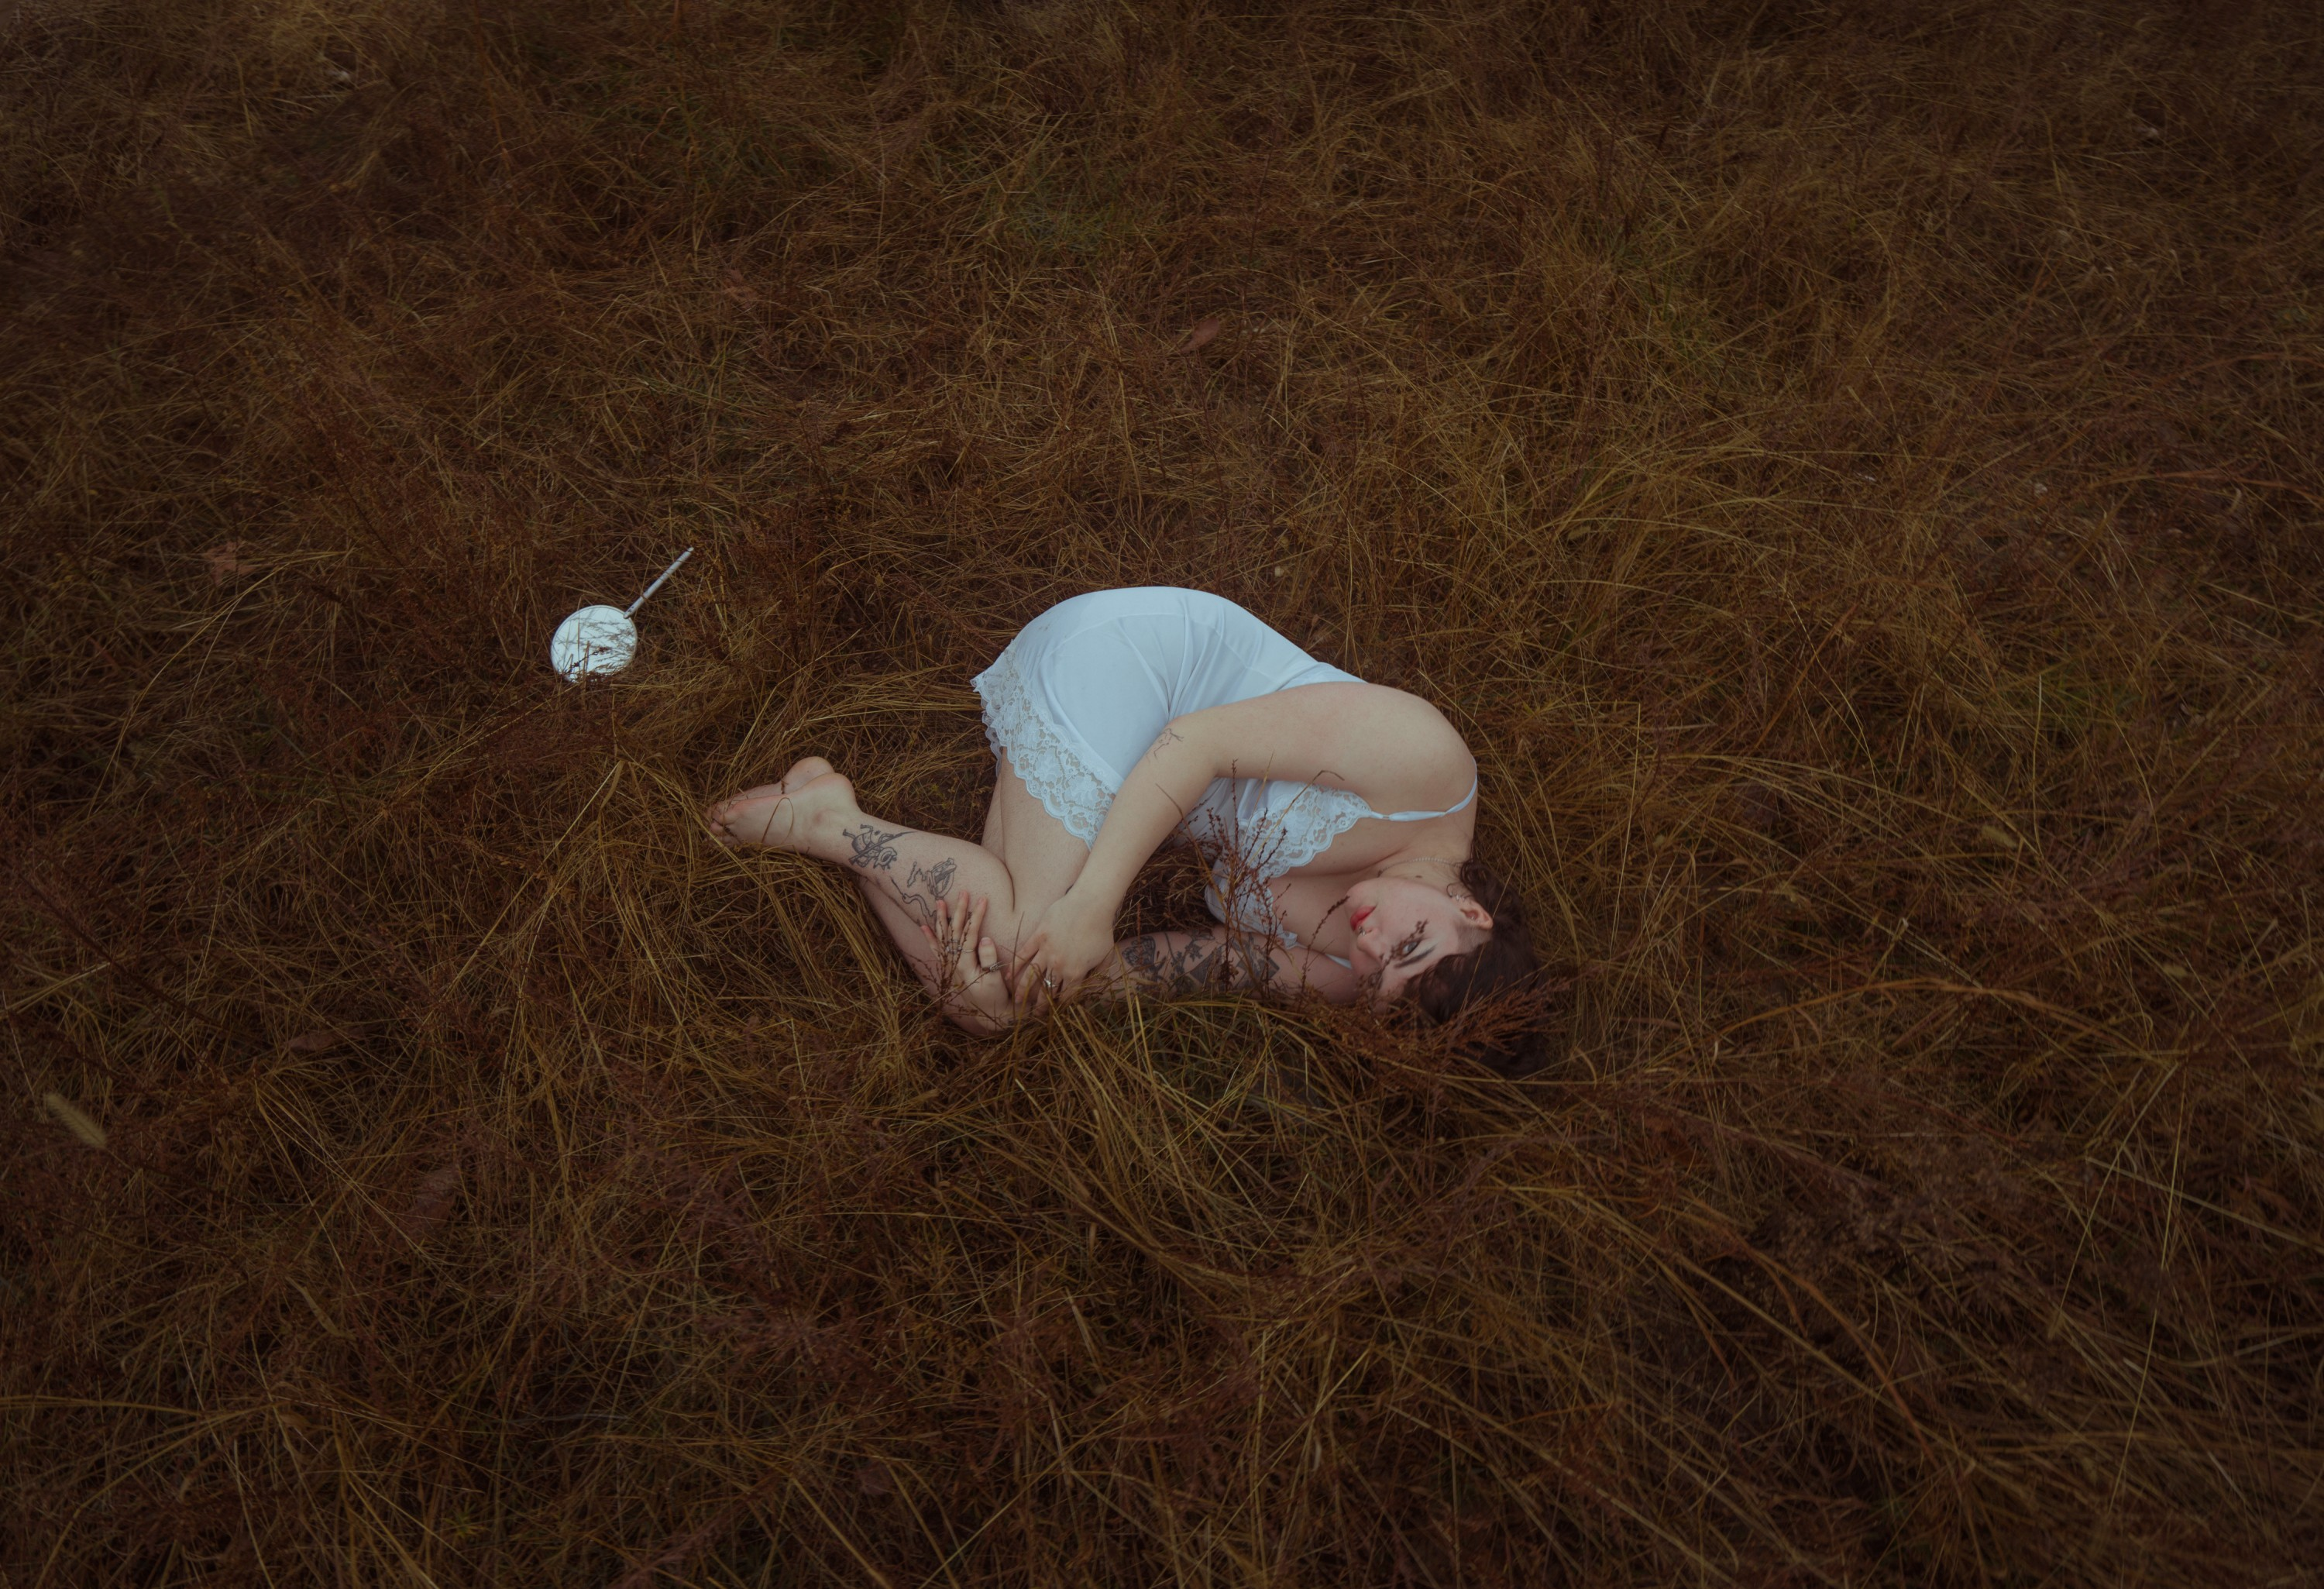 This is a landscape oriented digital photograph. The figure is in fetal position laying in tall, brown grass, wearing a white slip dress, looking at the viewer. A silver hand mirror sits on the grass to the left of her.